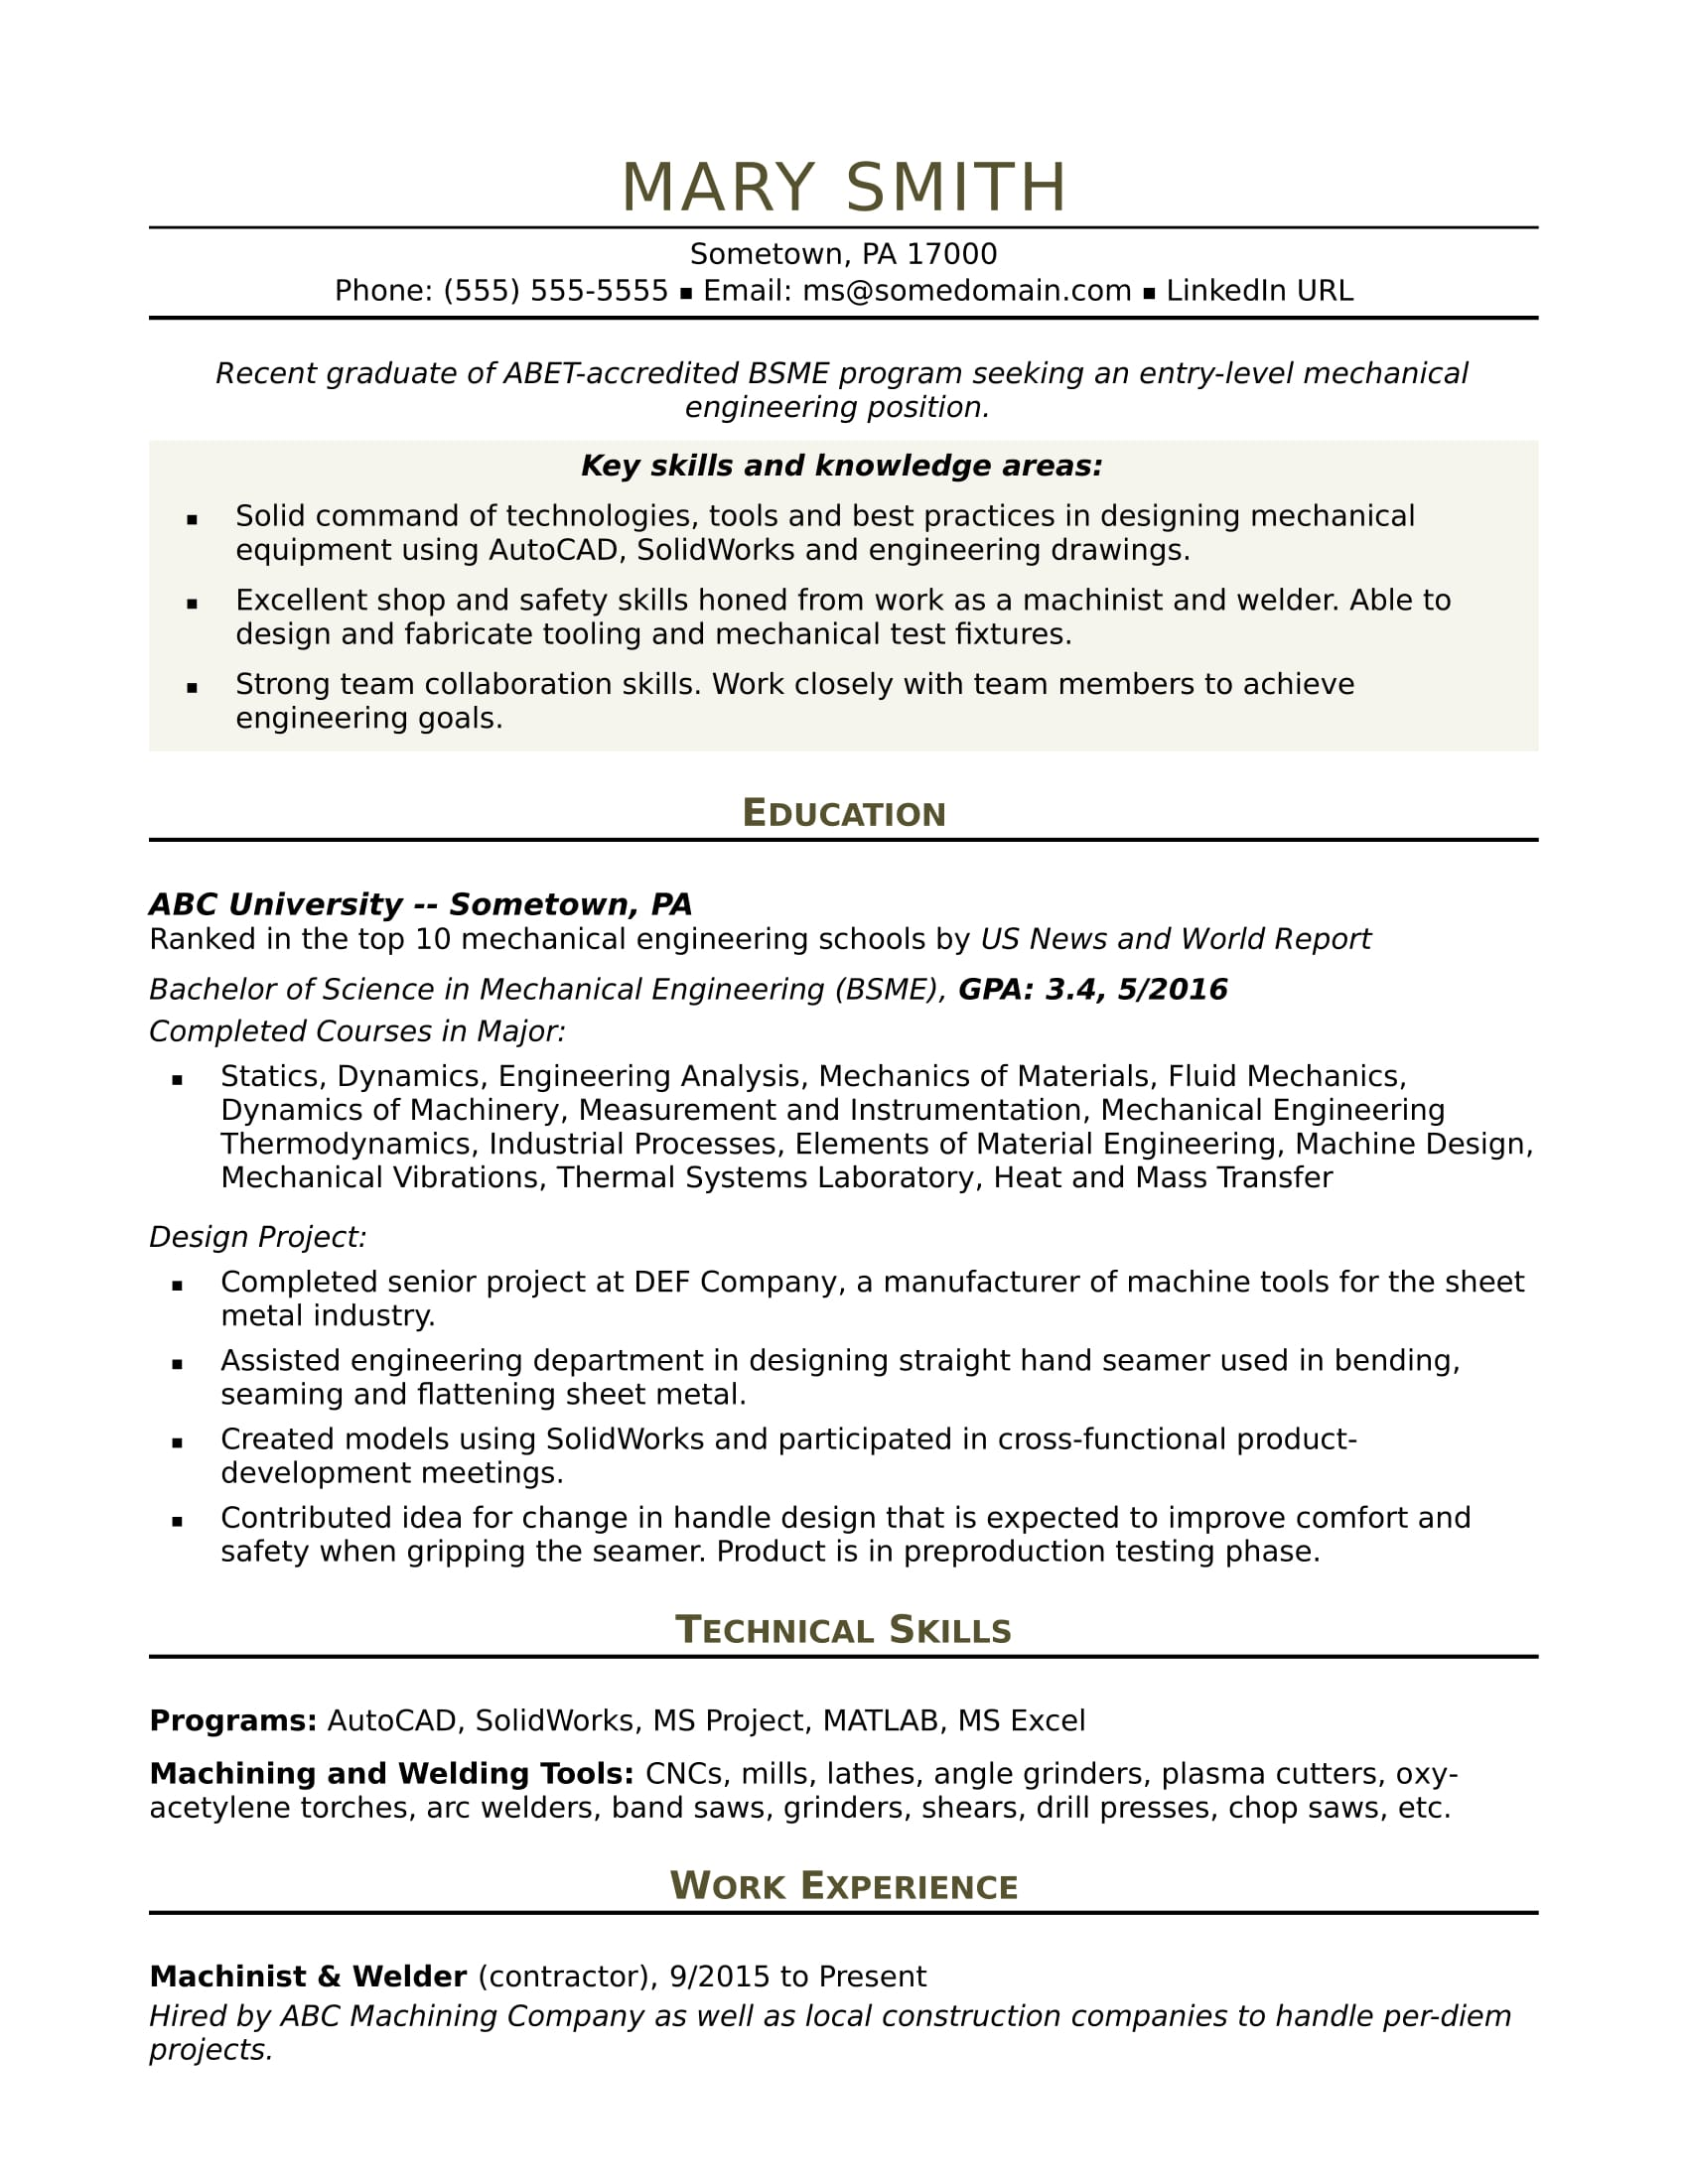 Amazing Sample Resume For An Entry Level Mechanical Engineer